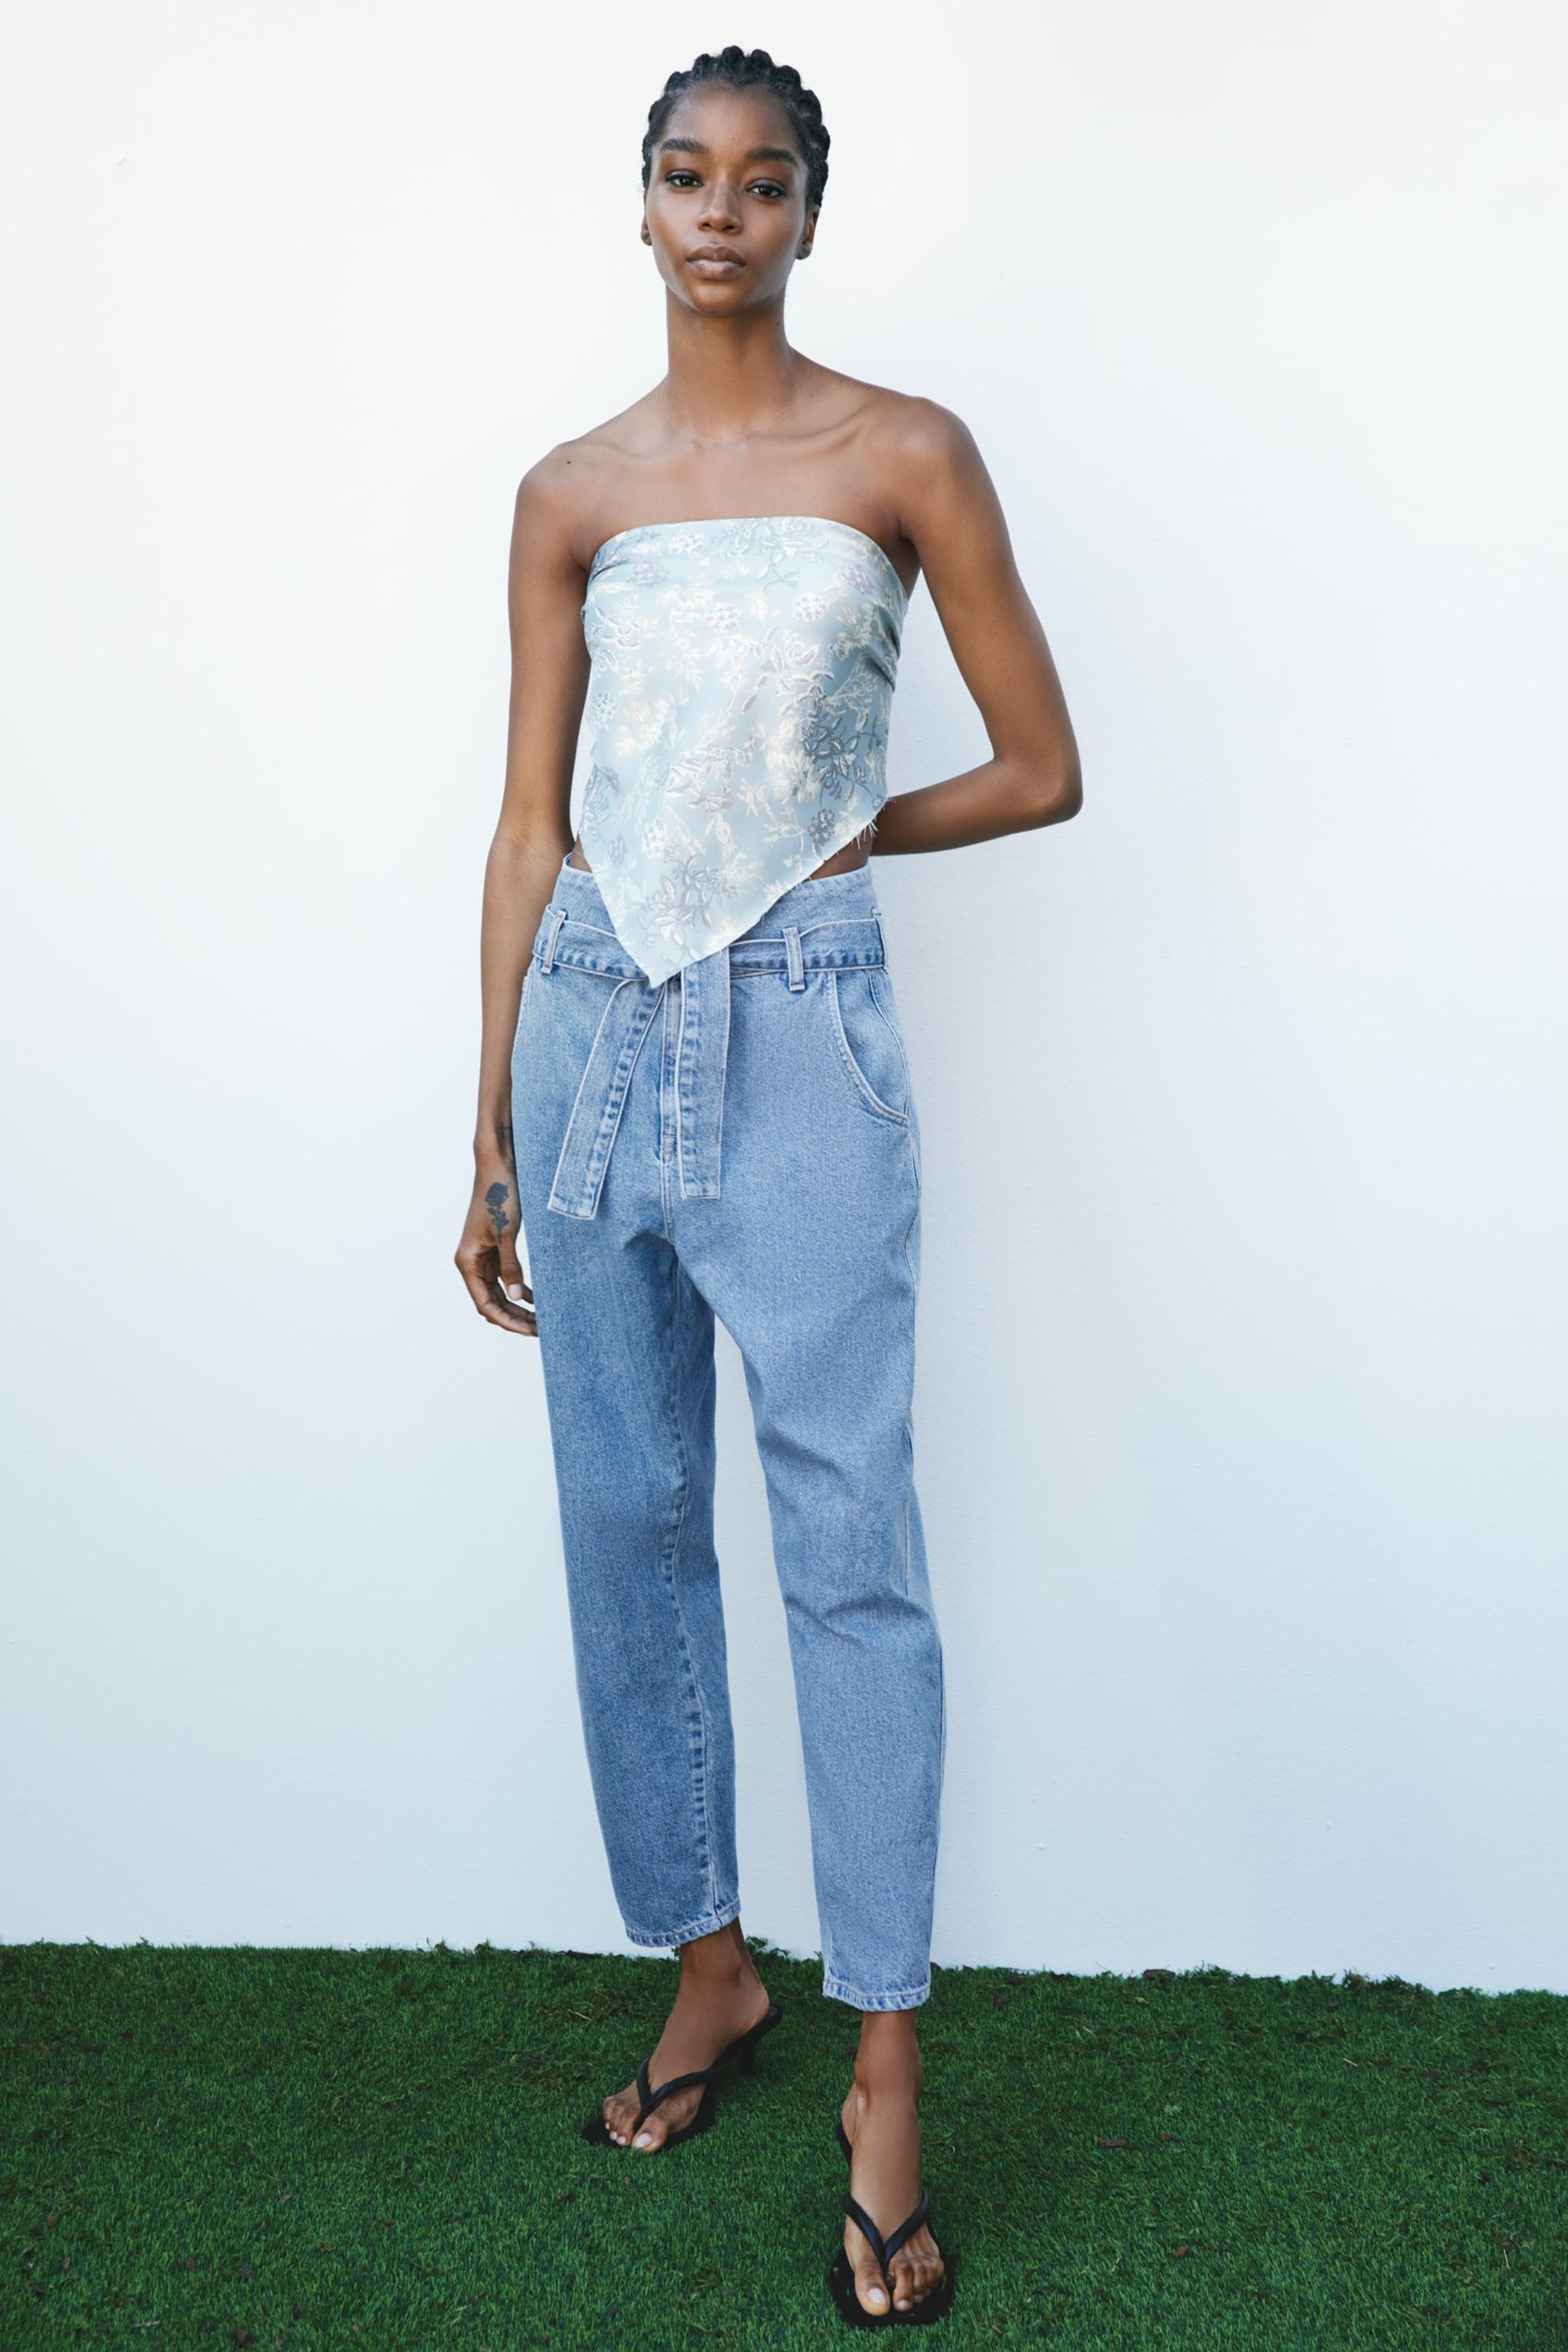 Z1975 BELTED BALLOON JEANS